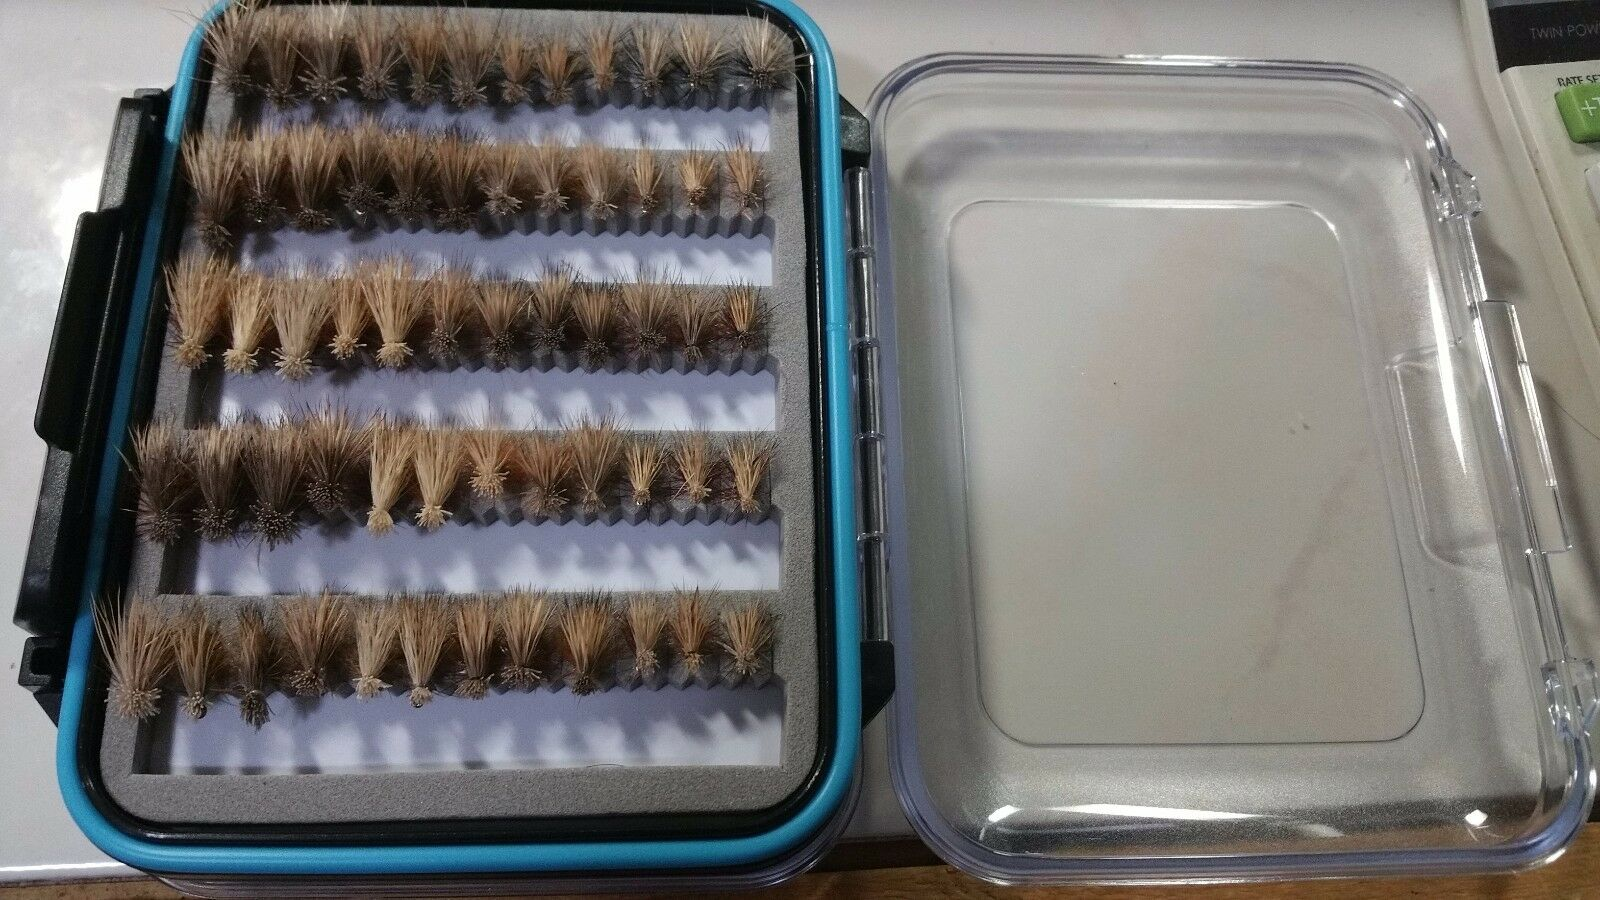 72 Elk Hair Caddis In Fliegen Box - Trout Dry Flies - US Veteran Owned